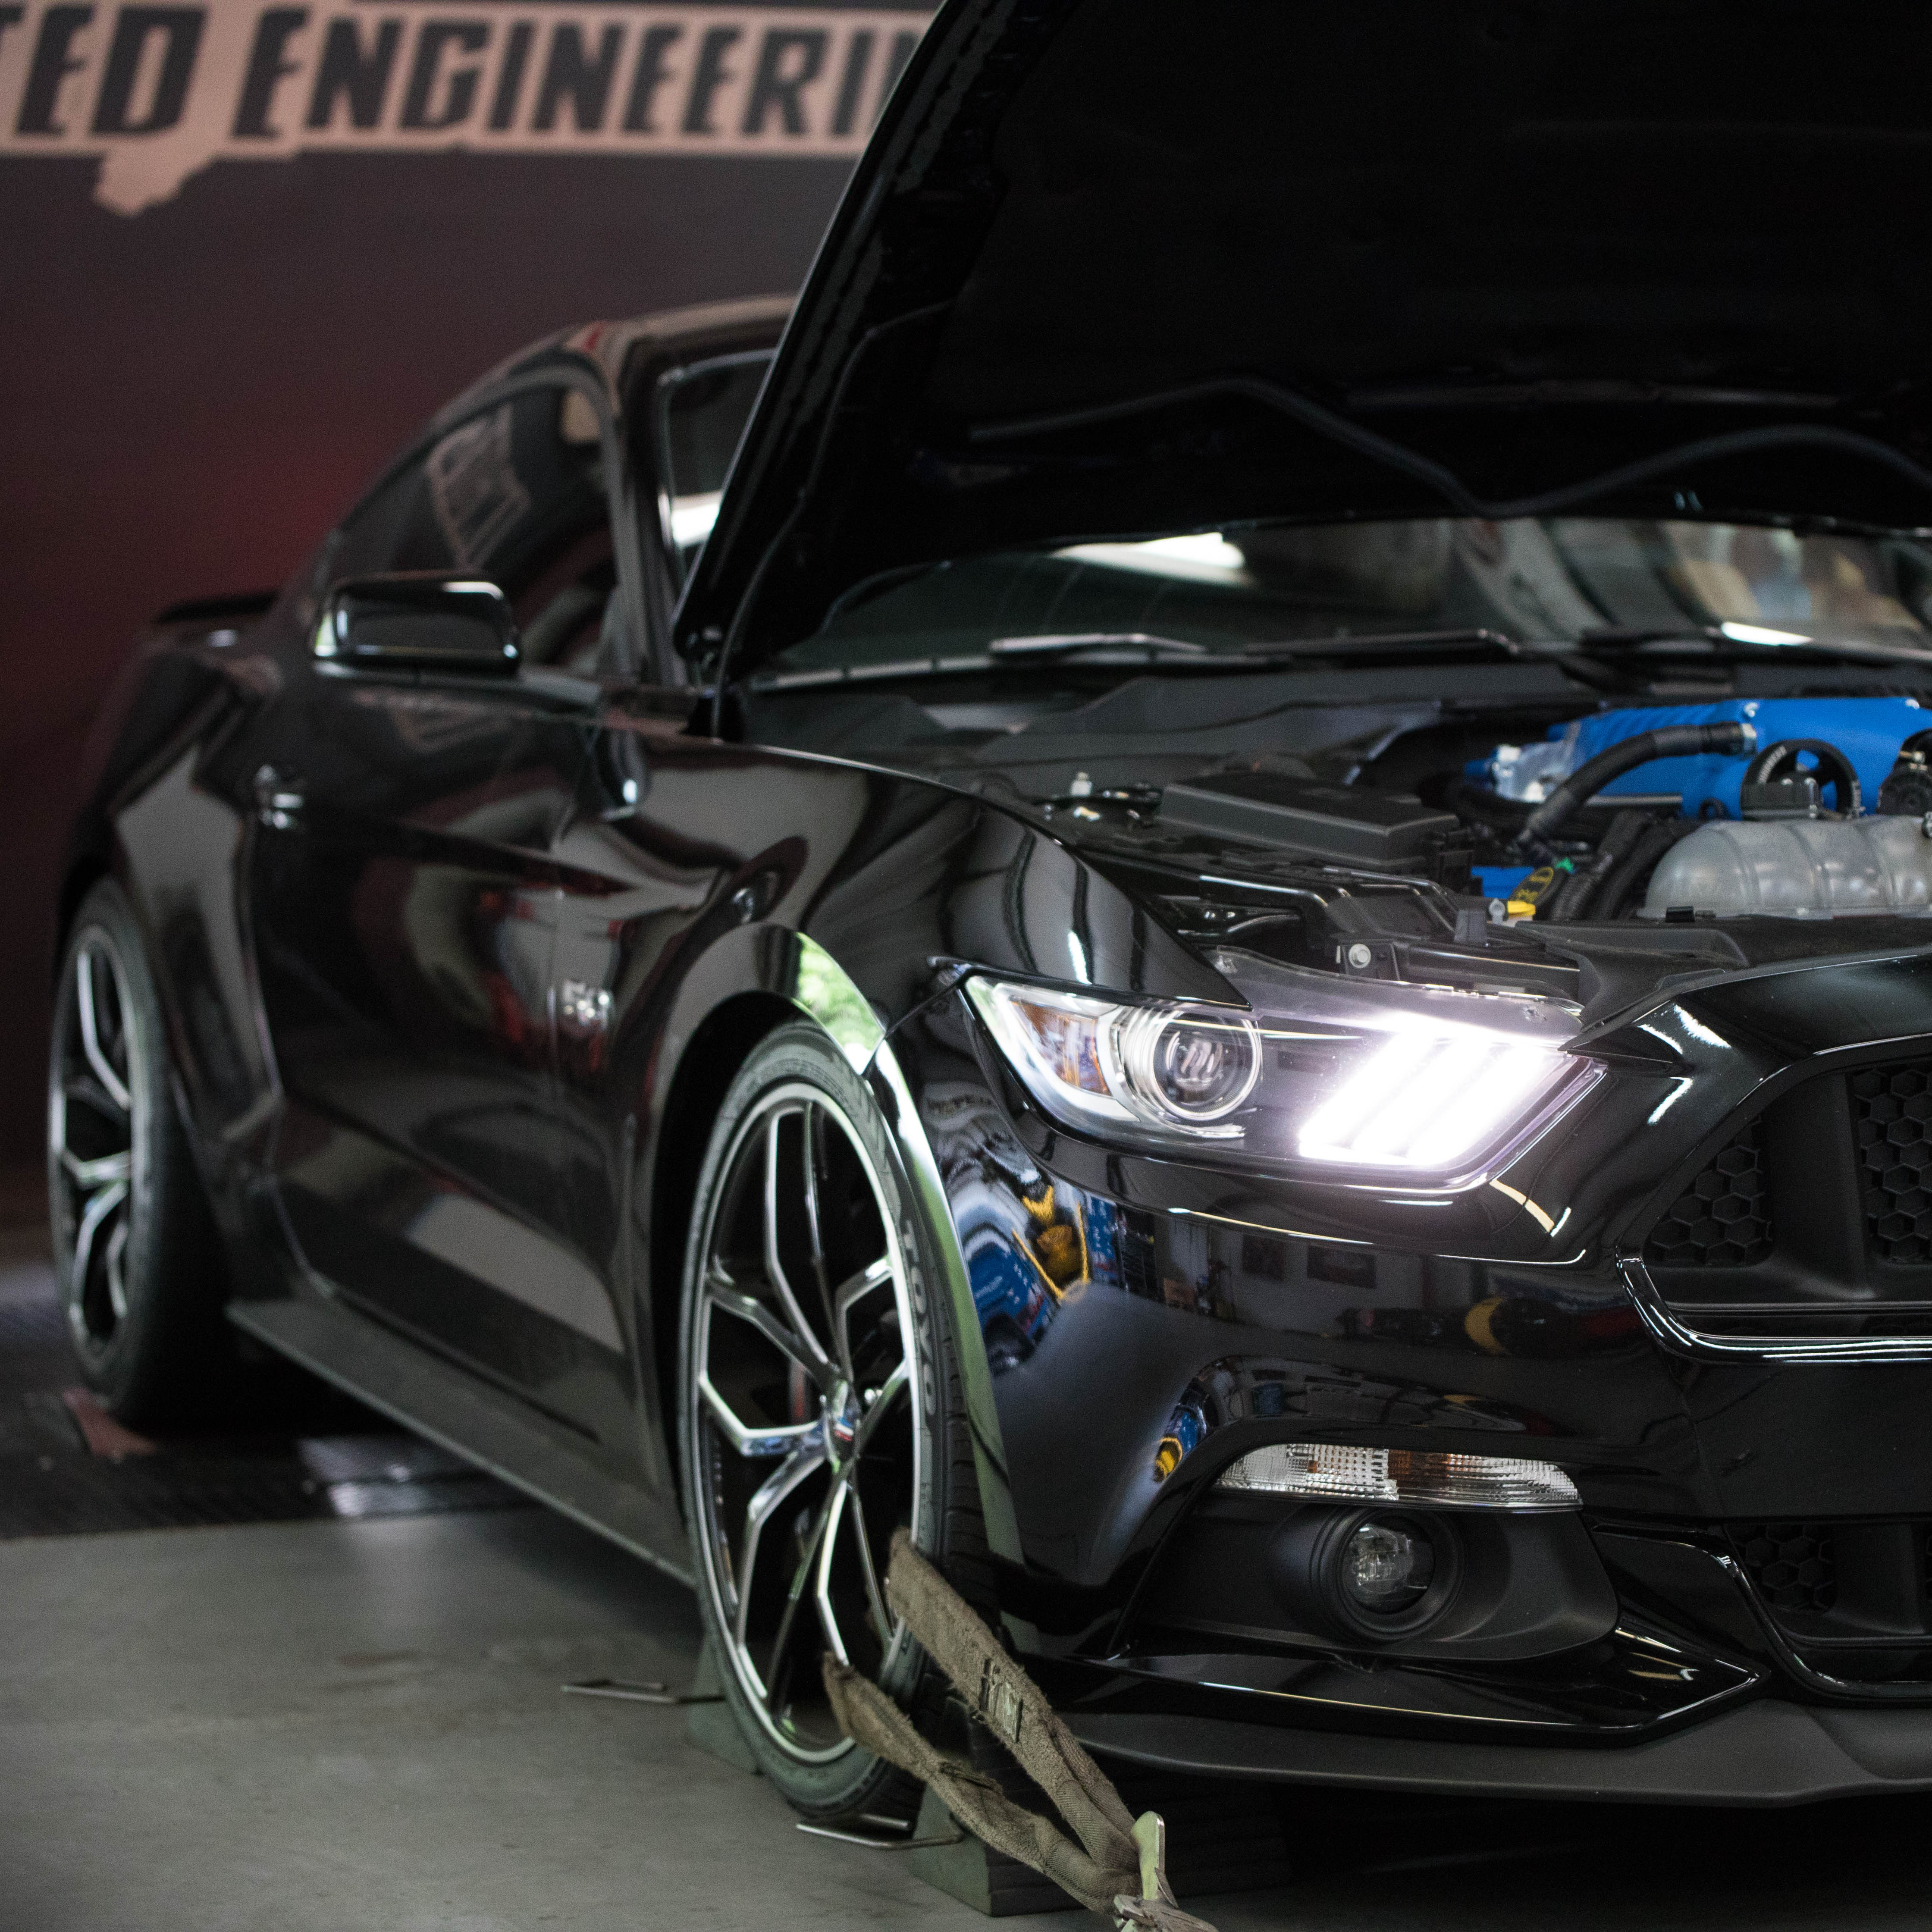 Dyno Tuning | Authorized Dealer & Certified Custom Tuning